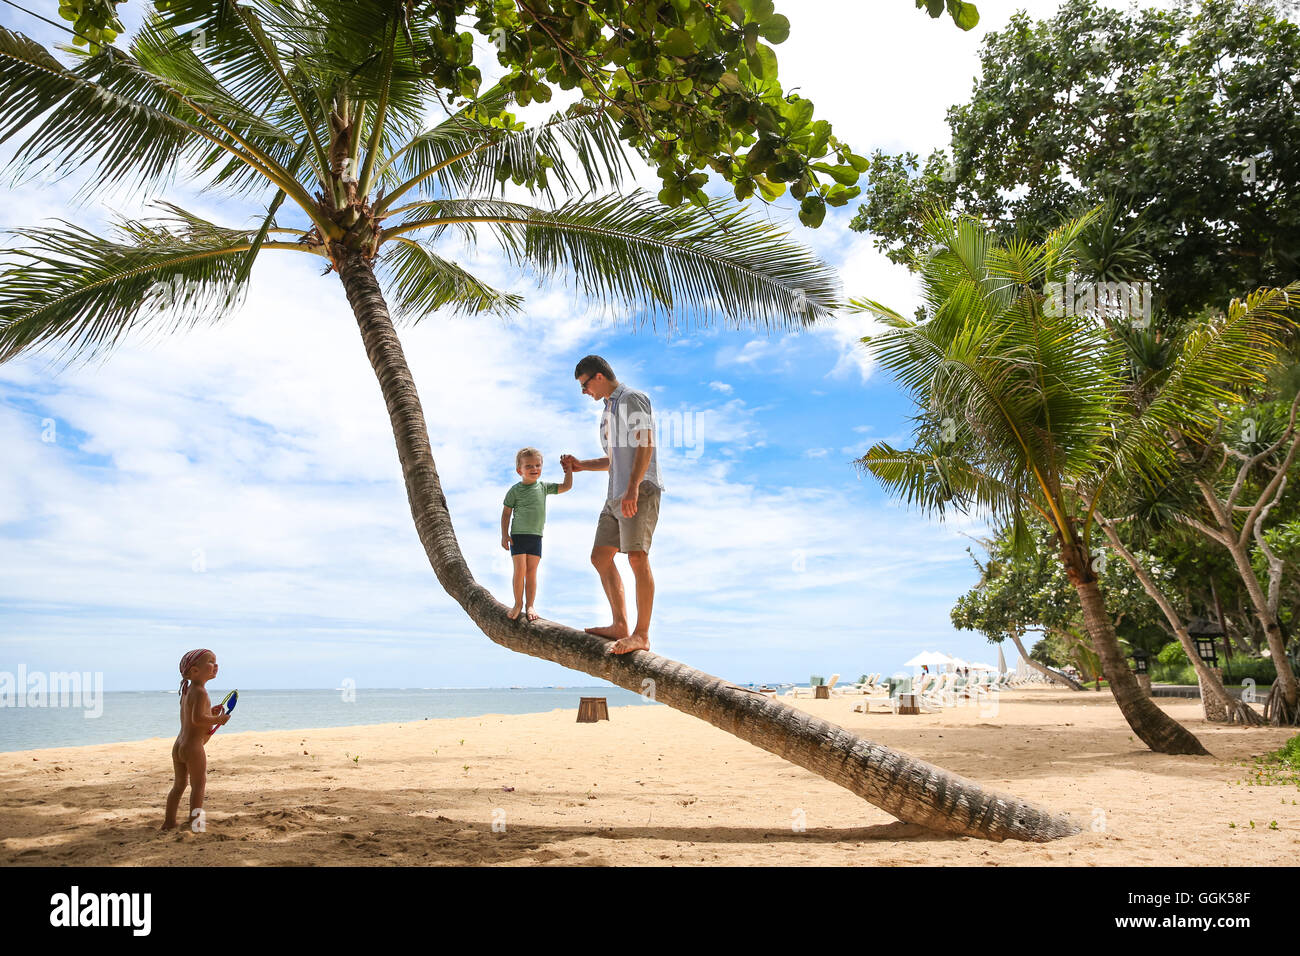 Father and son standing on a coconut tree, beach, little boy 3 years old, western family, family travel in Asia, - Stock Image